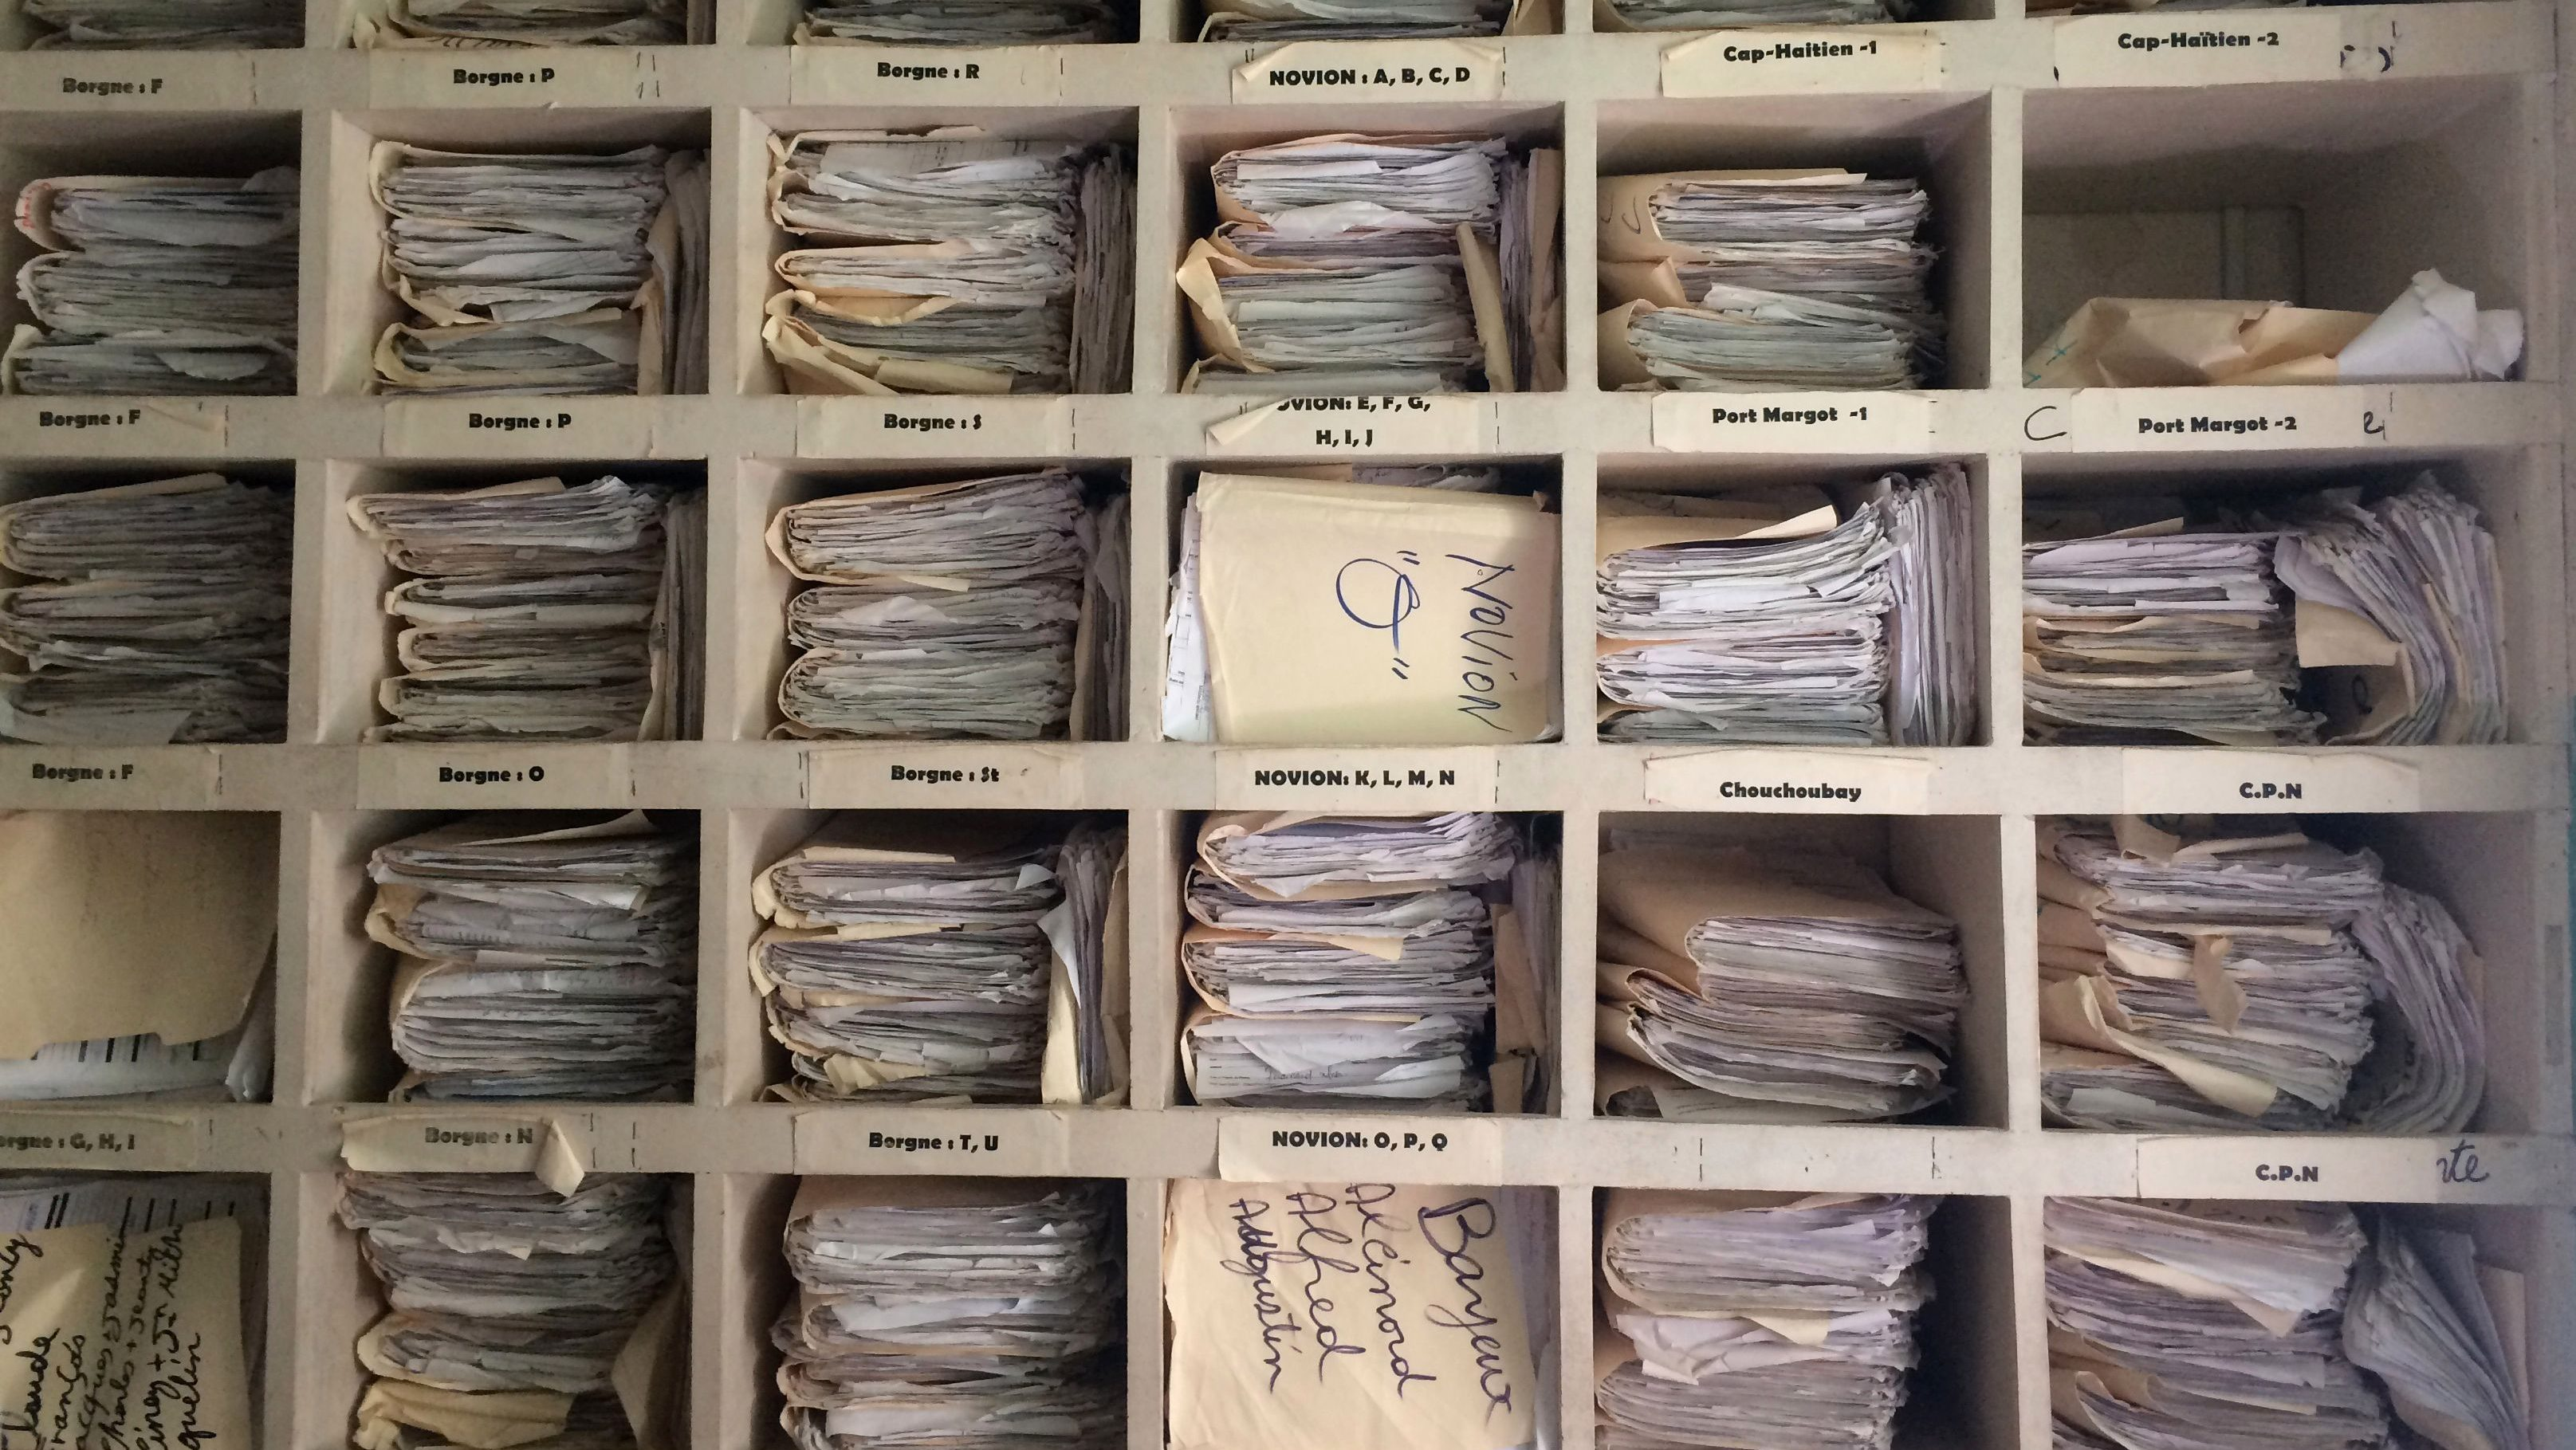 The patients' files collected by the communty health workers and stored in the hospital.